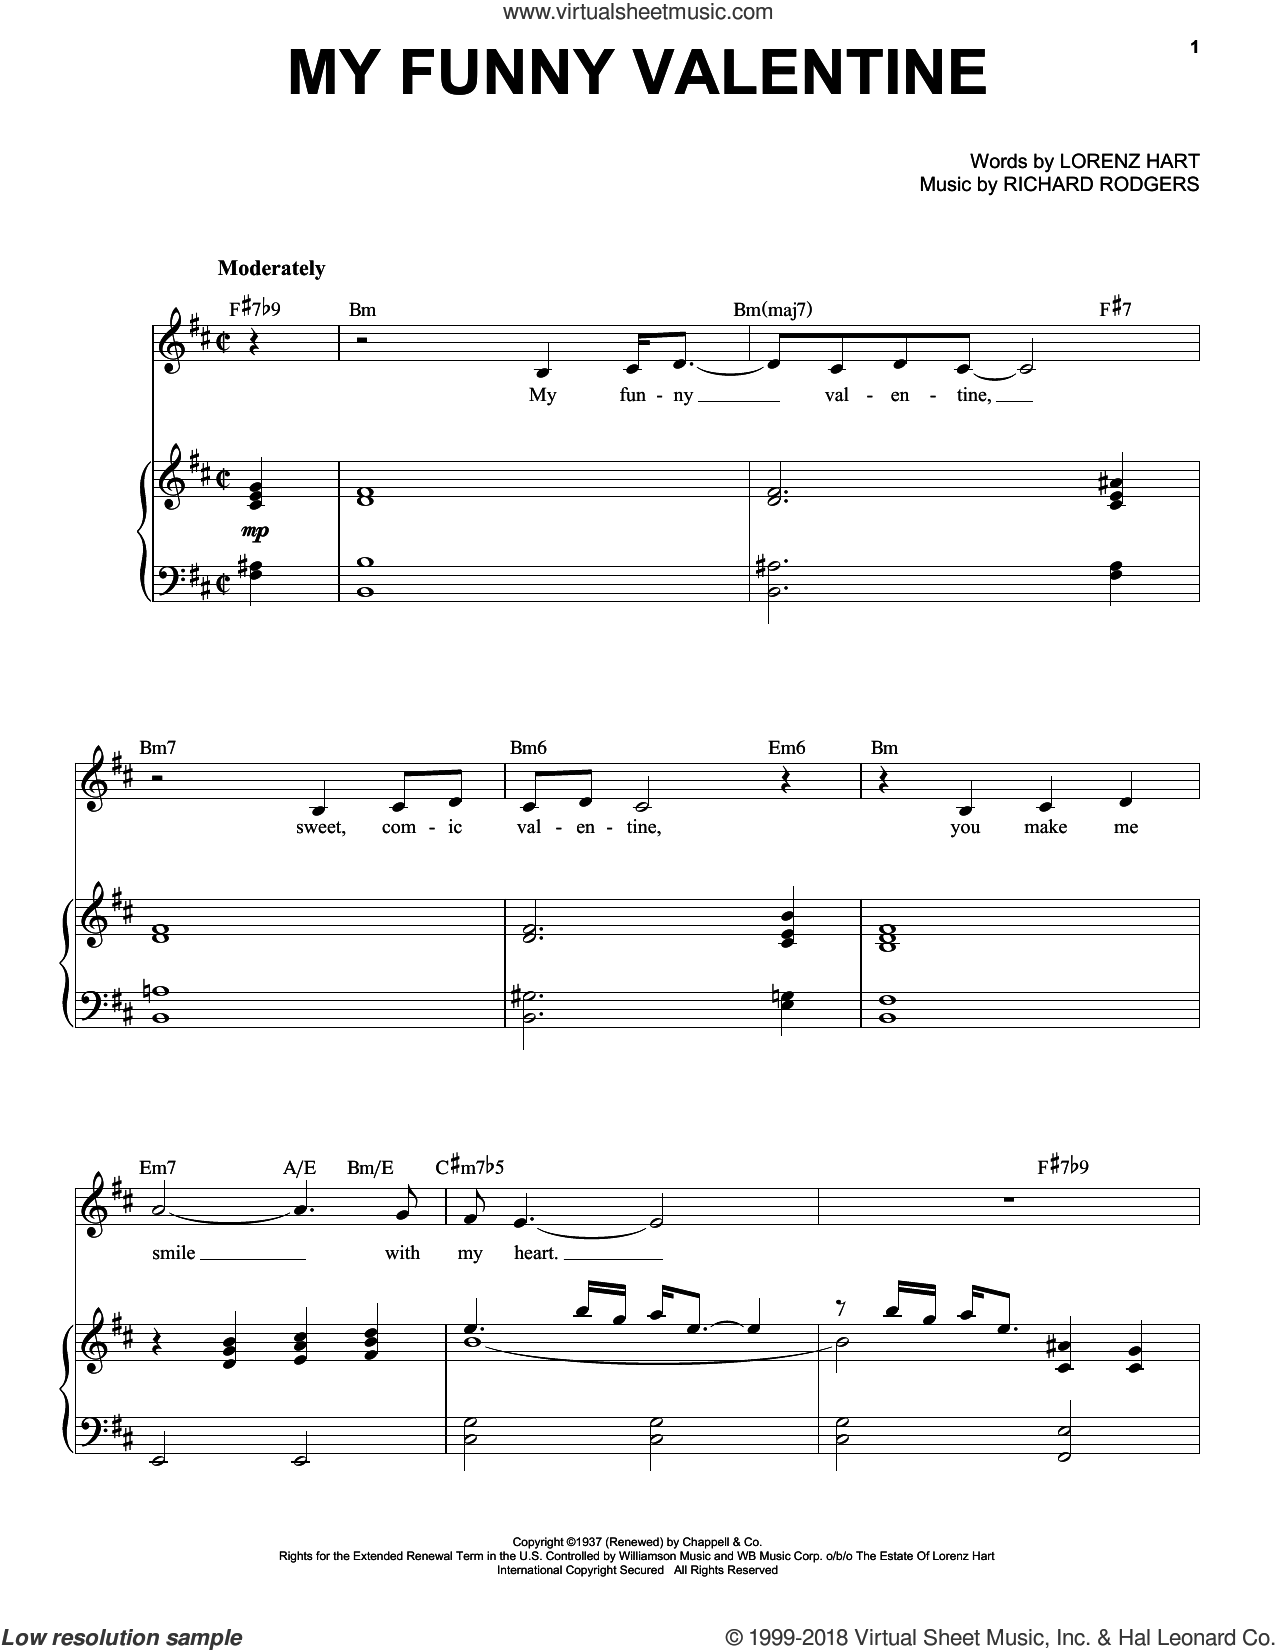 My Funny Valentine sheet music for voice and piano by Richard Rodgers